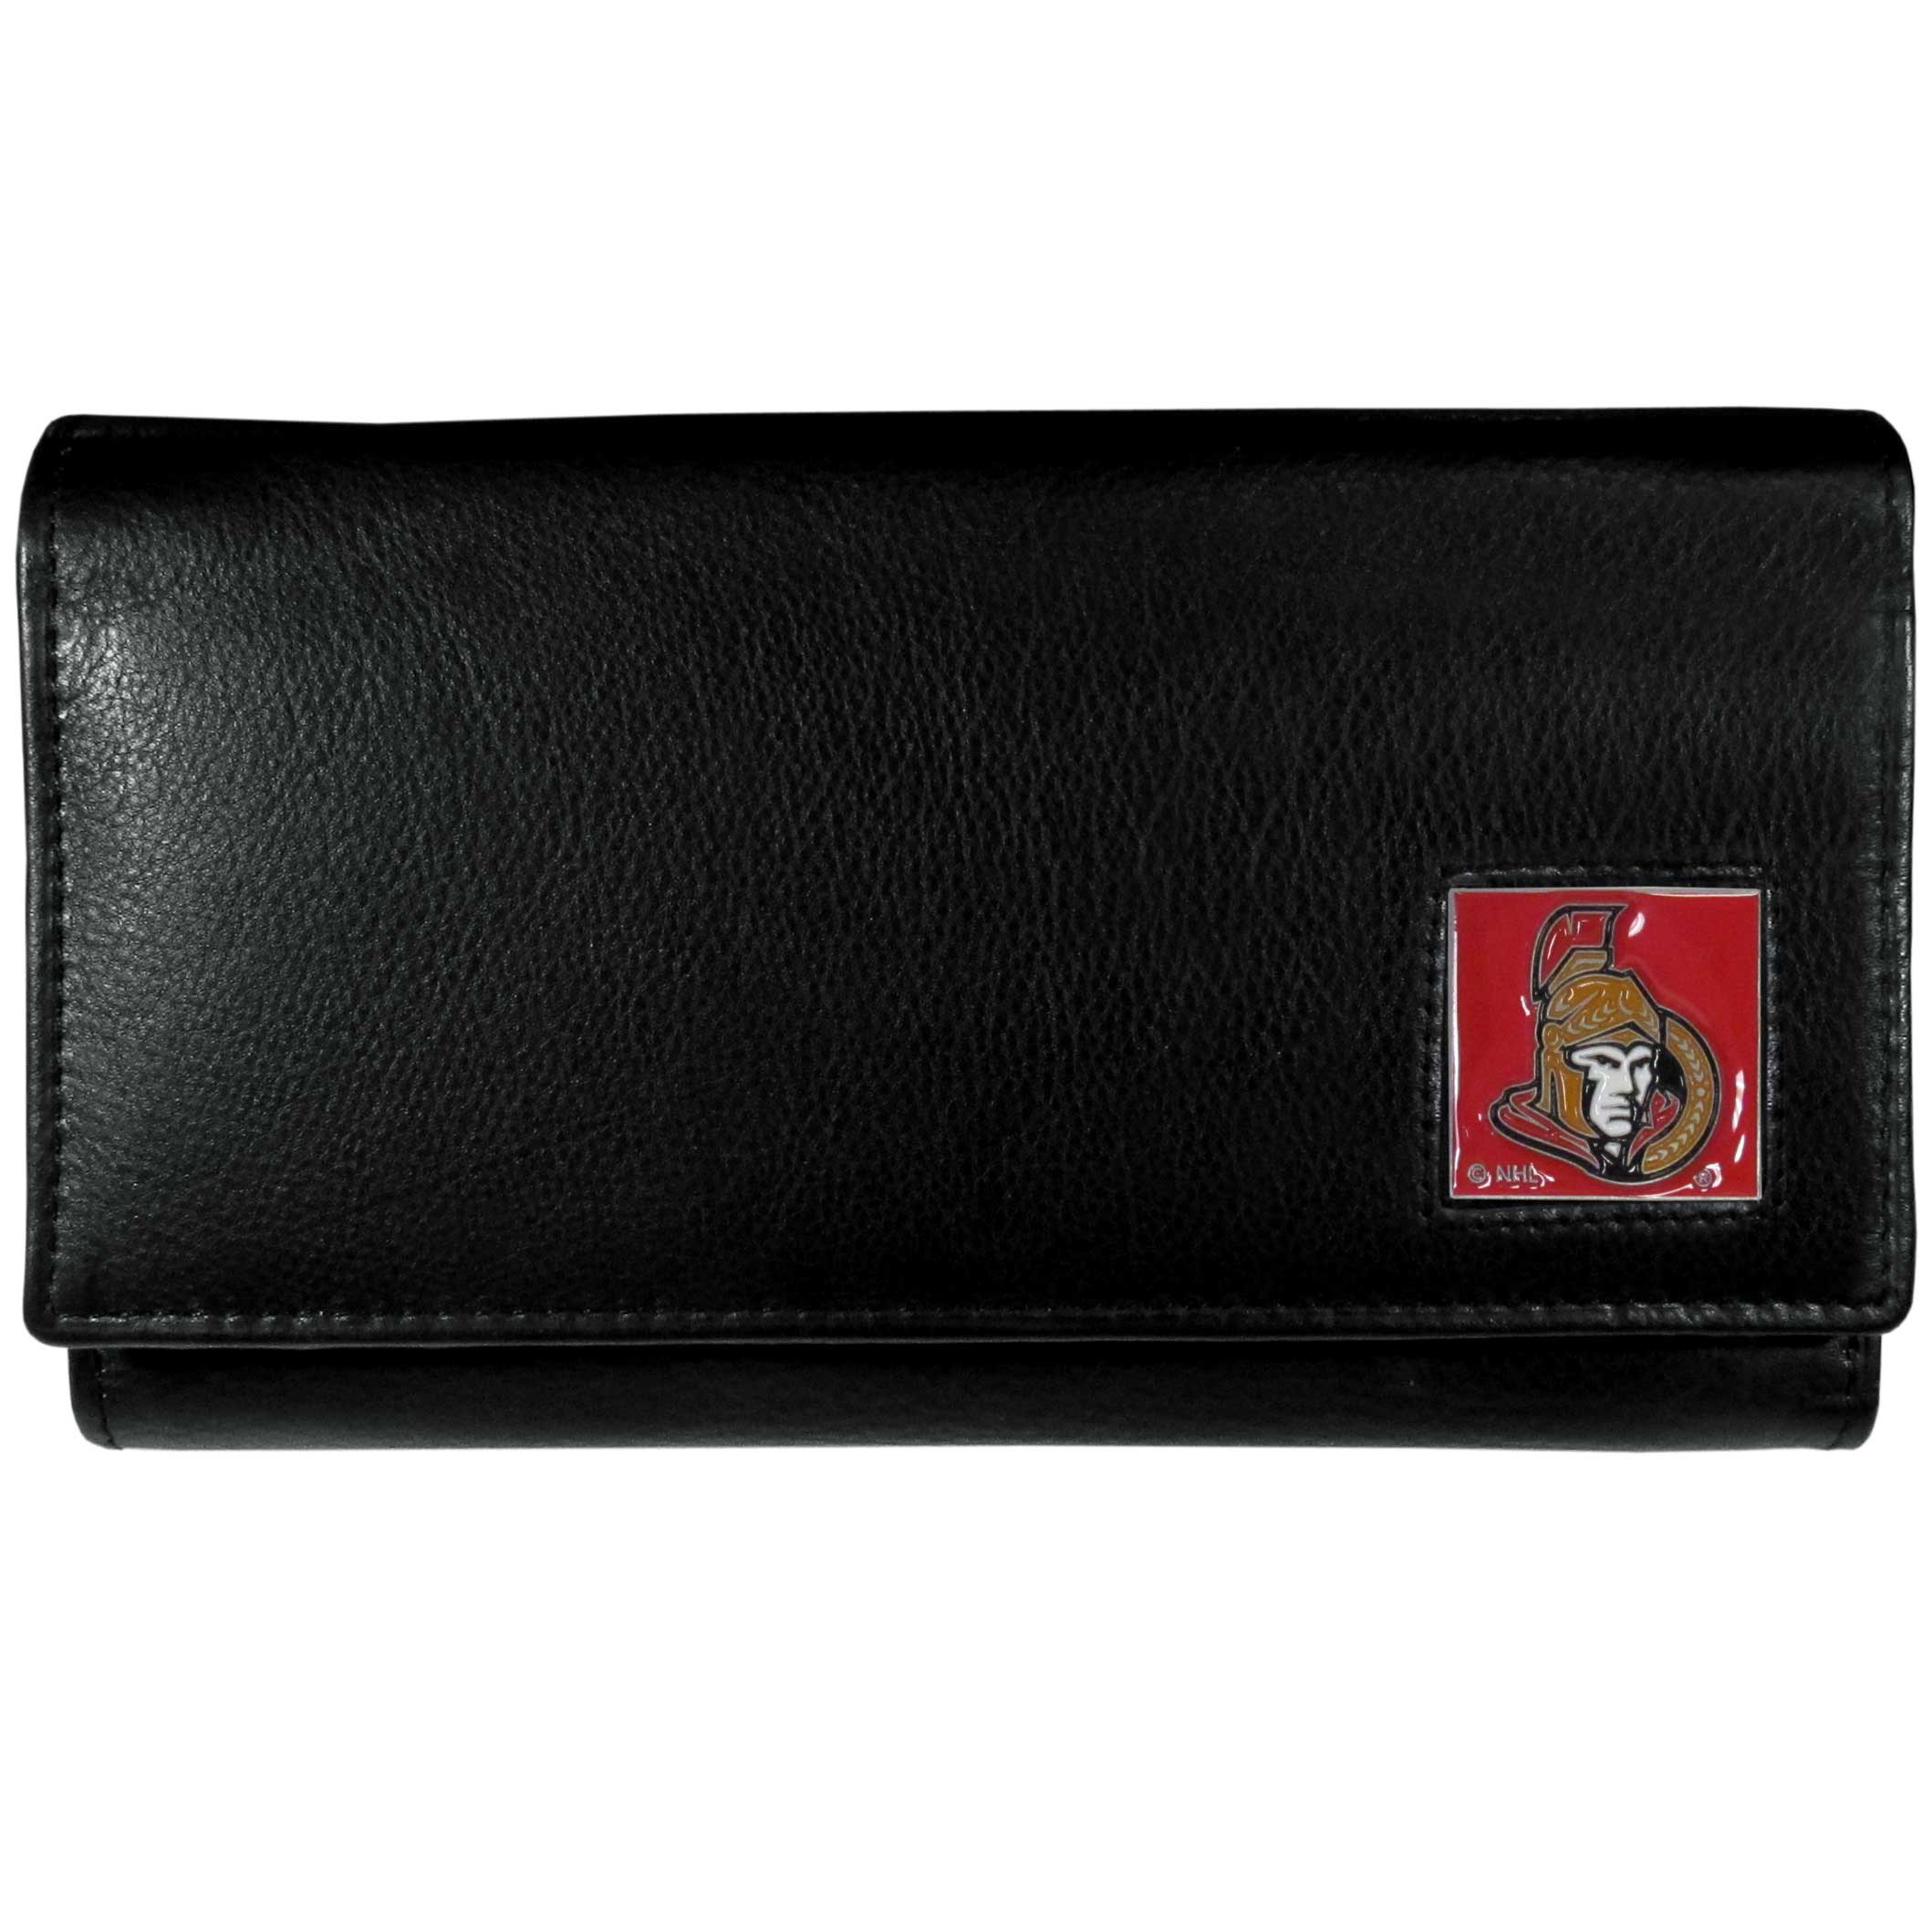 Ottawa Senators® Leather Women's Wallet - This genuine leather women's pocketbook features 9 credit card slots, a windowed ID slot, spacious front pocket, inner pocket and zippered coin pocket. The front of the pocketbook has a hand painted metal square with the Ottawa Senators® primary logo.